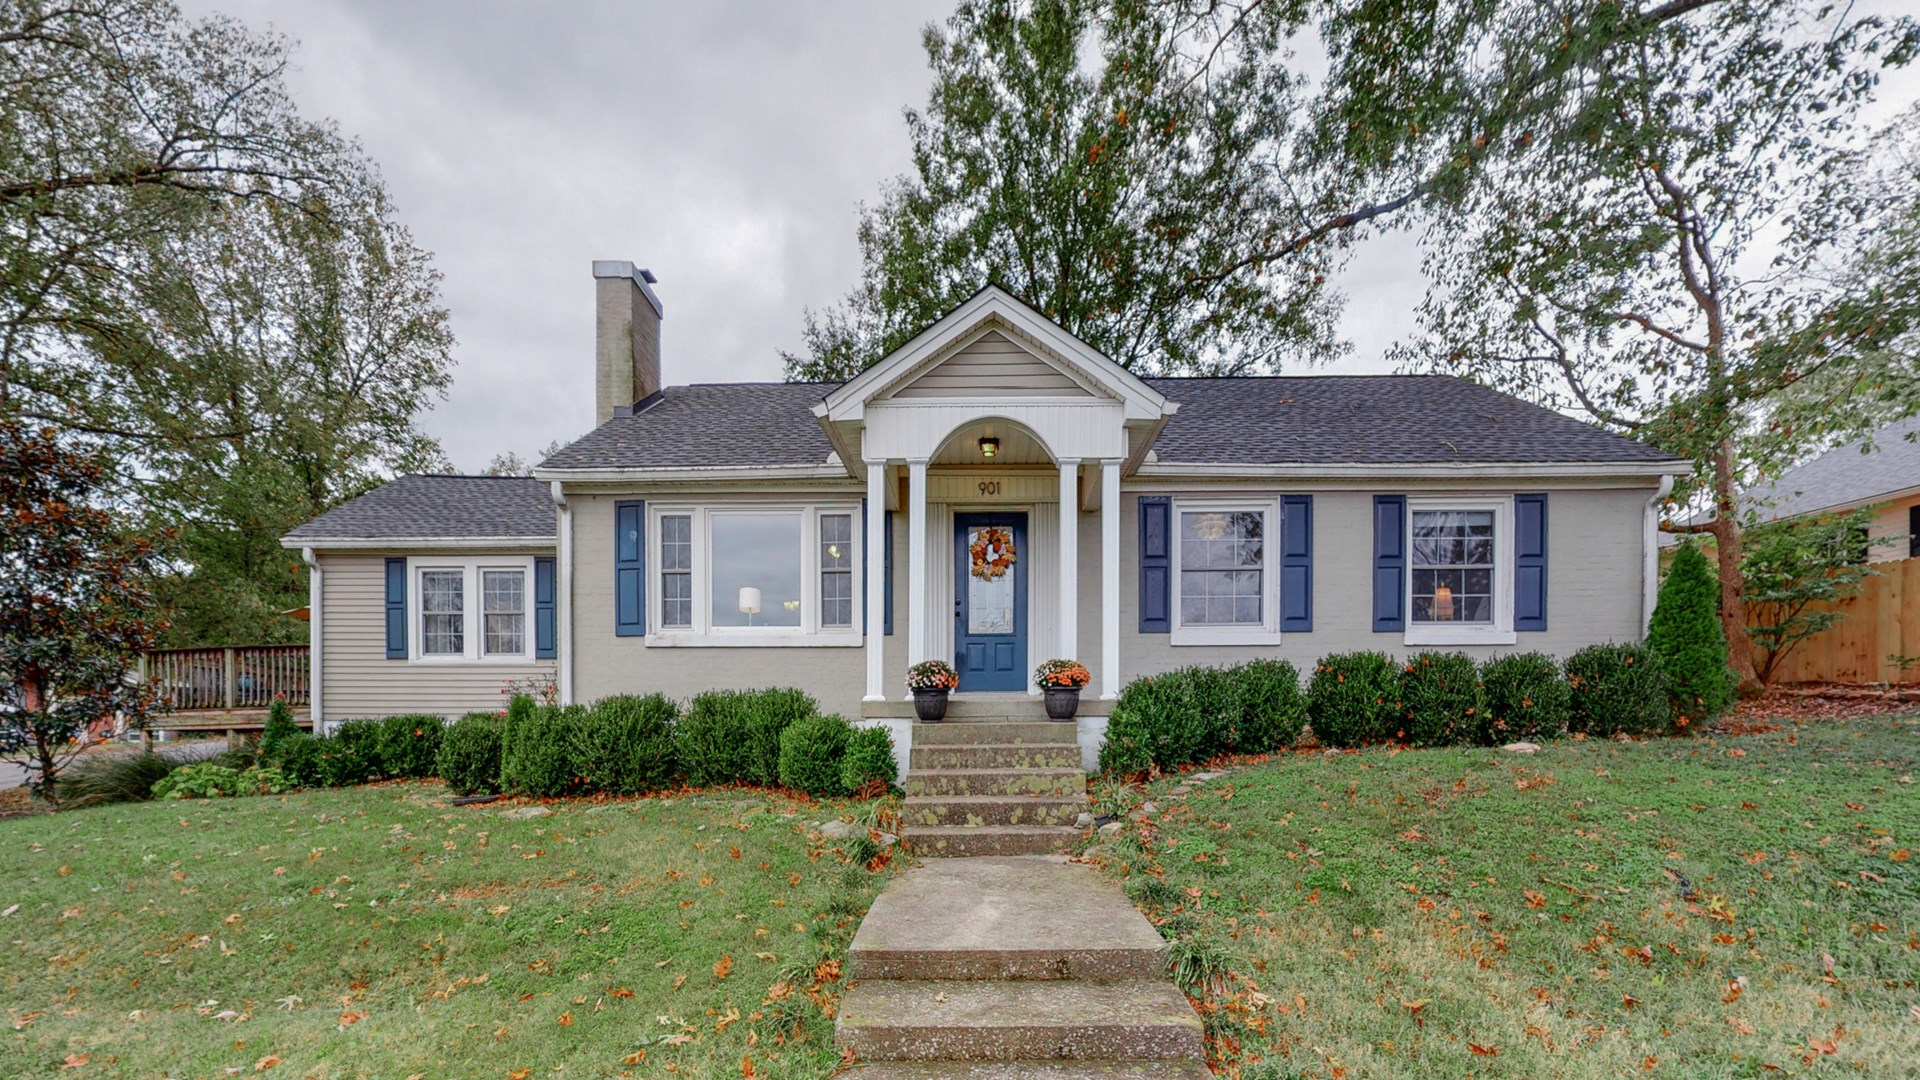 Home in Town for Sale in Columbia, Tennessee